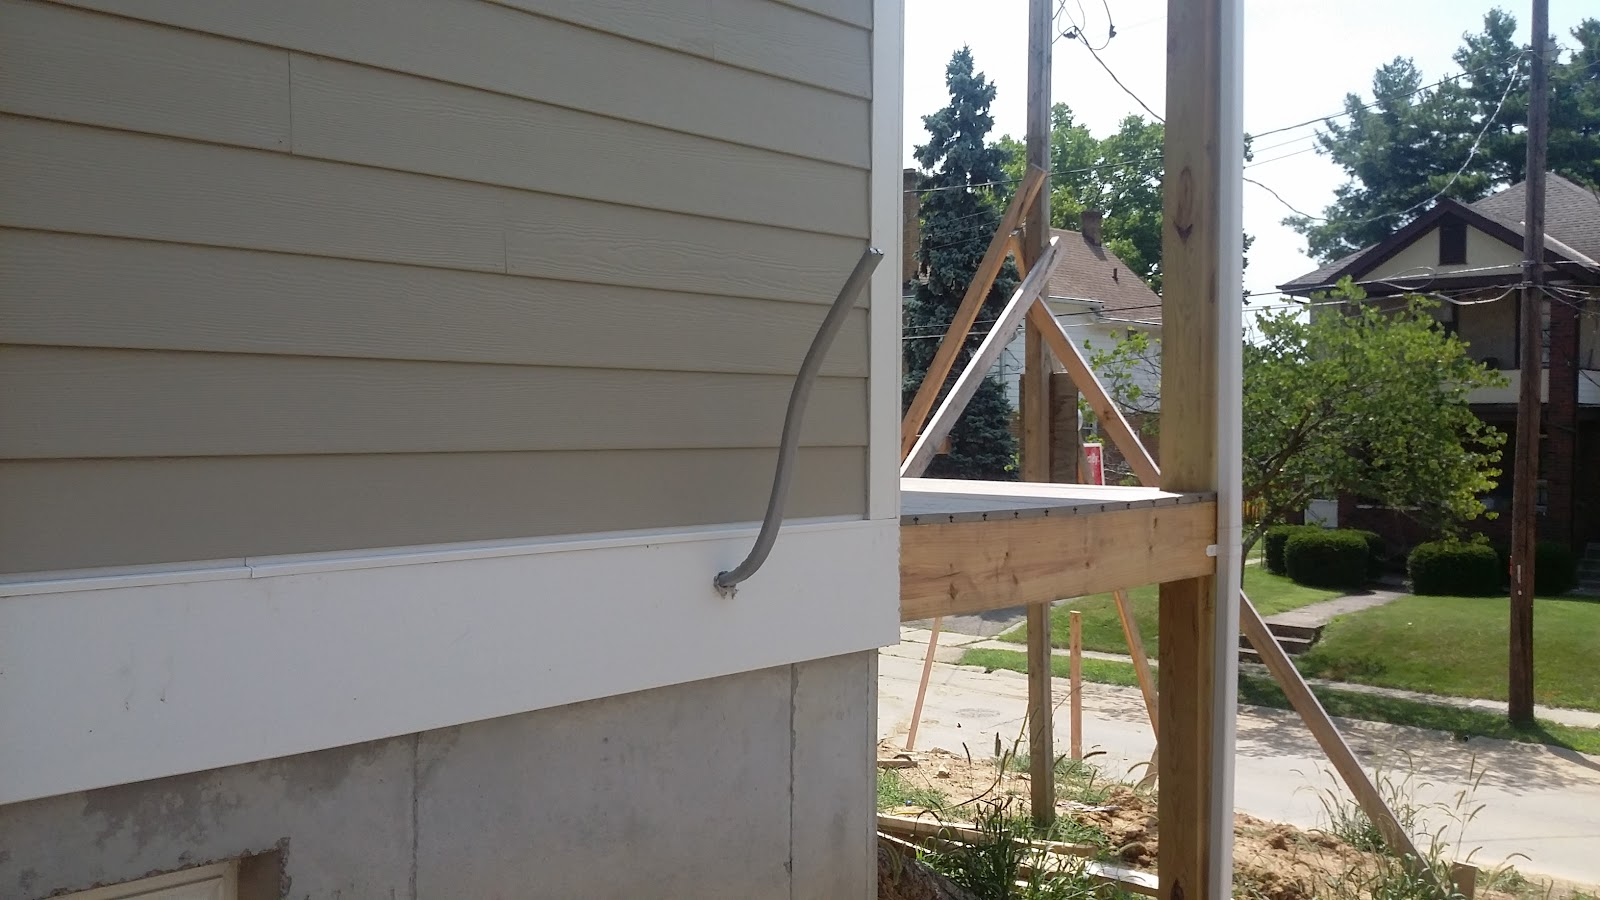 hight resolution of  panel box in the front corner of the basement and providing conduits for the home run wiring and outlets mounted along the concrete foundation walls